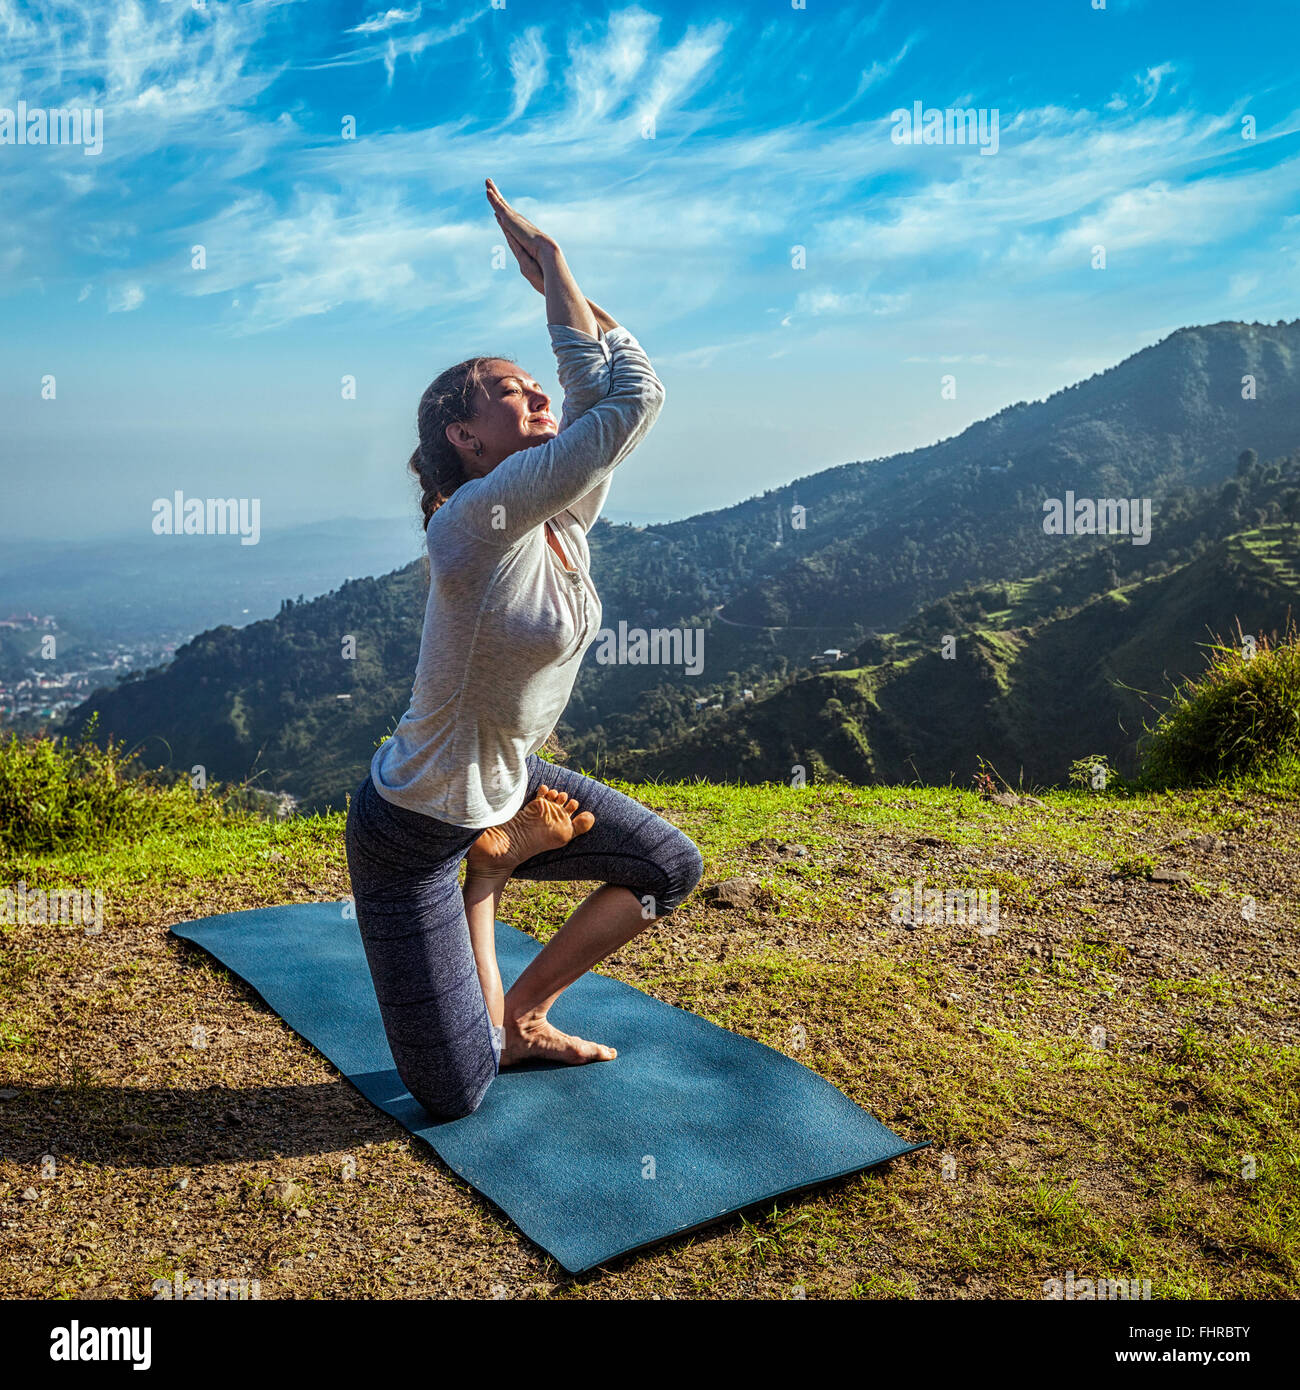 Young woman doing yoga advanced asana - Stock Image